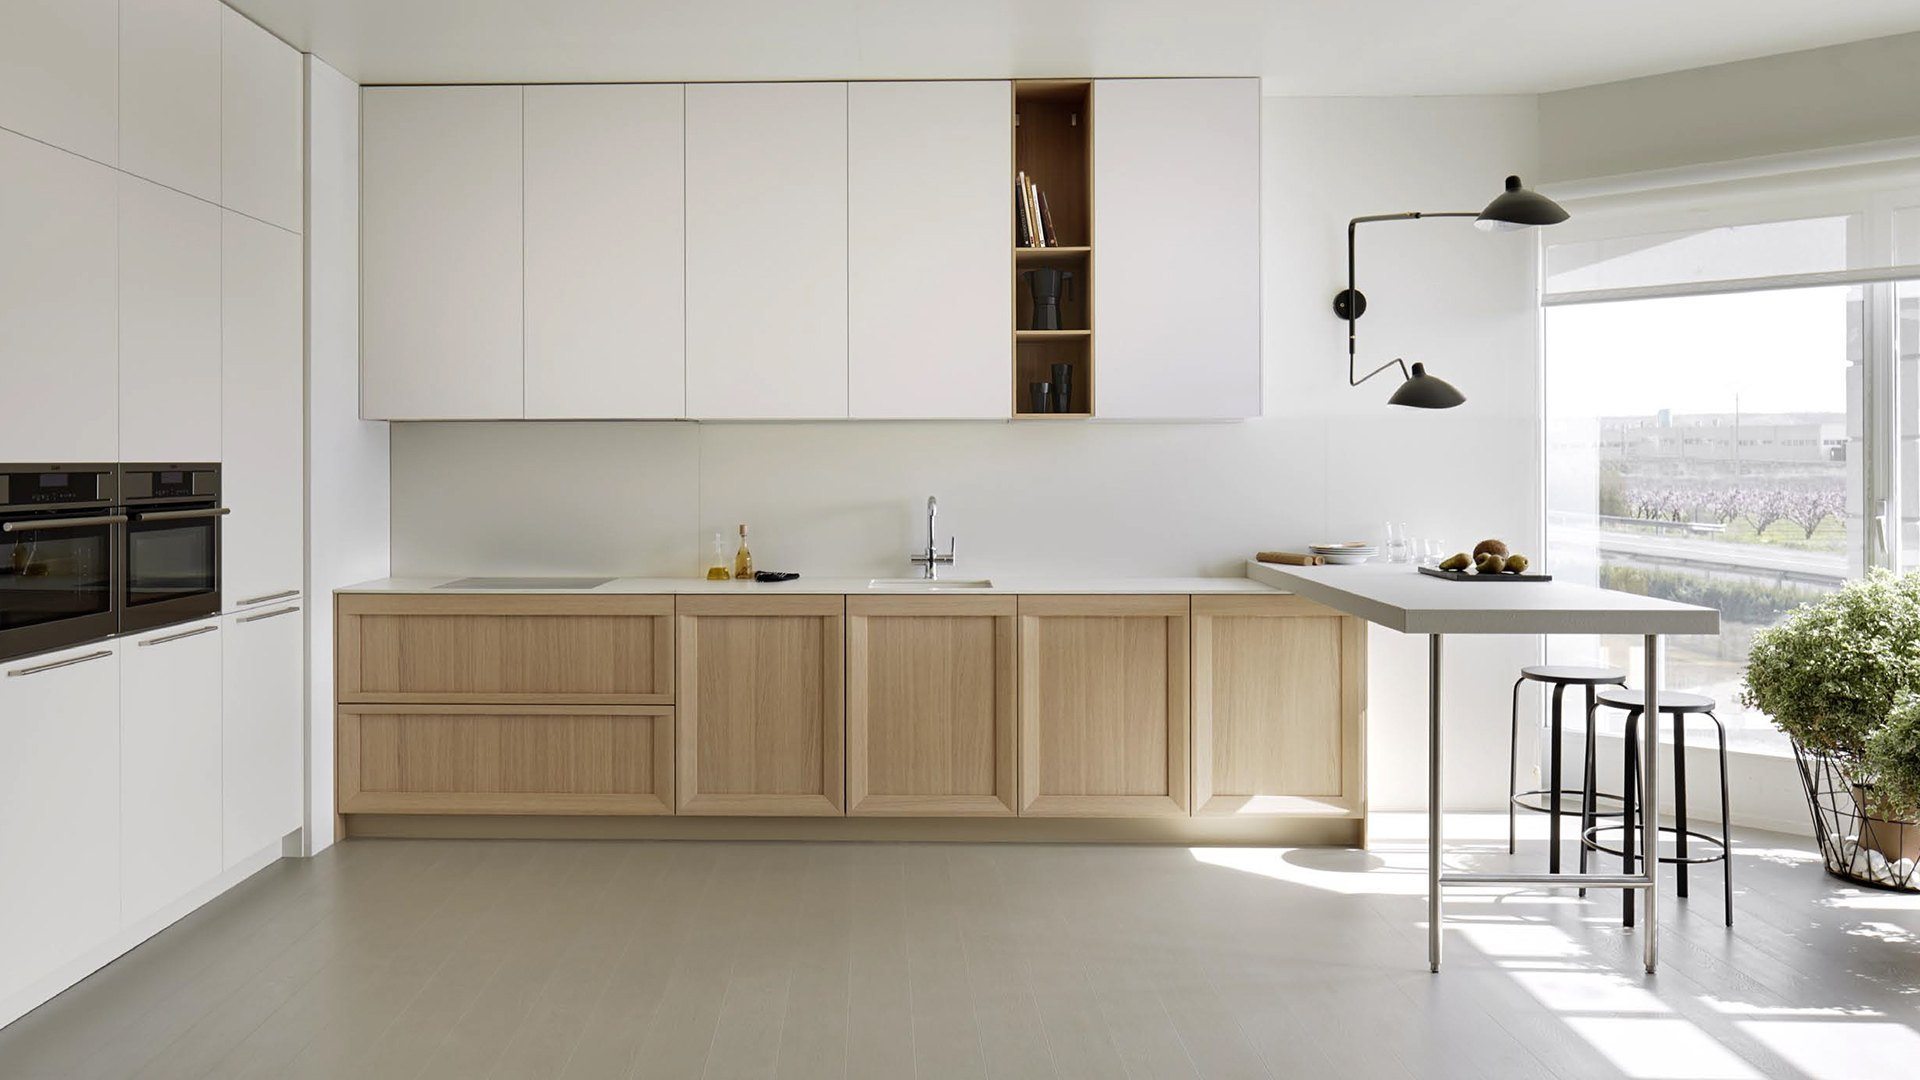 Soho roble natur blanco roto graden for Cocinas wengue y blanco